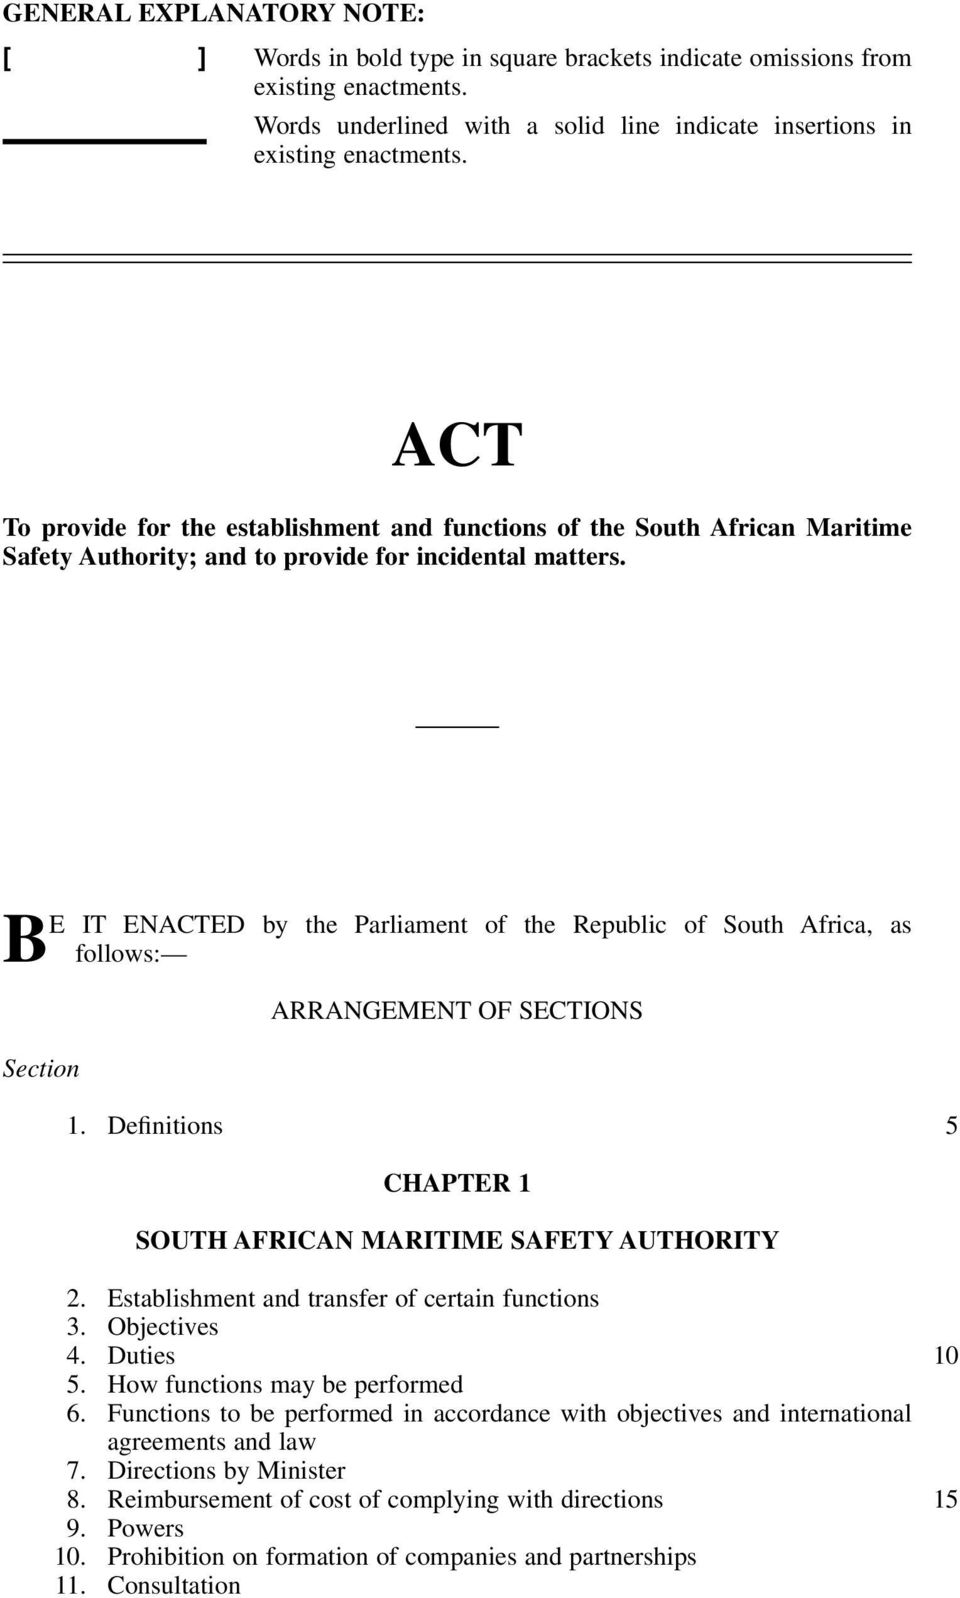 BE IT ENACTED by the Parliament of the Republic of South Africa, as follows: ARRANGEMENT OF SECTIONS Section 1. Definitions 5 CHAPTER 1 SOUTH AFRICAN MARITIME SAFETY AUTHORITY 2.